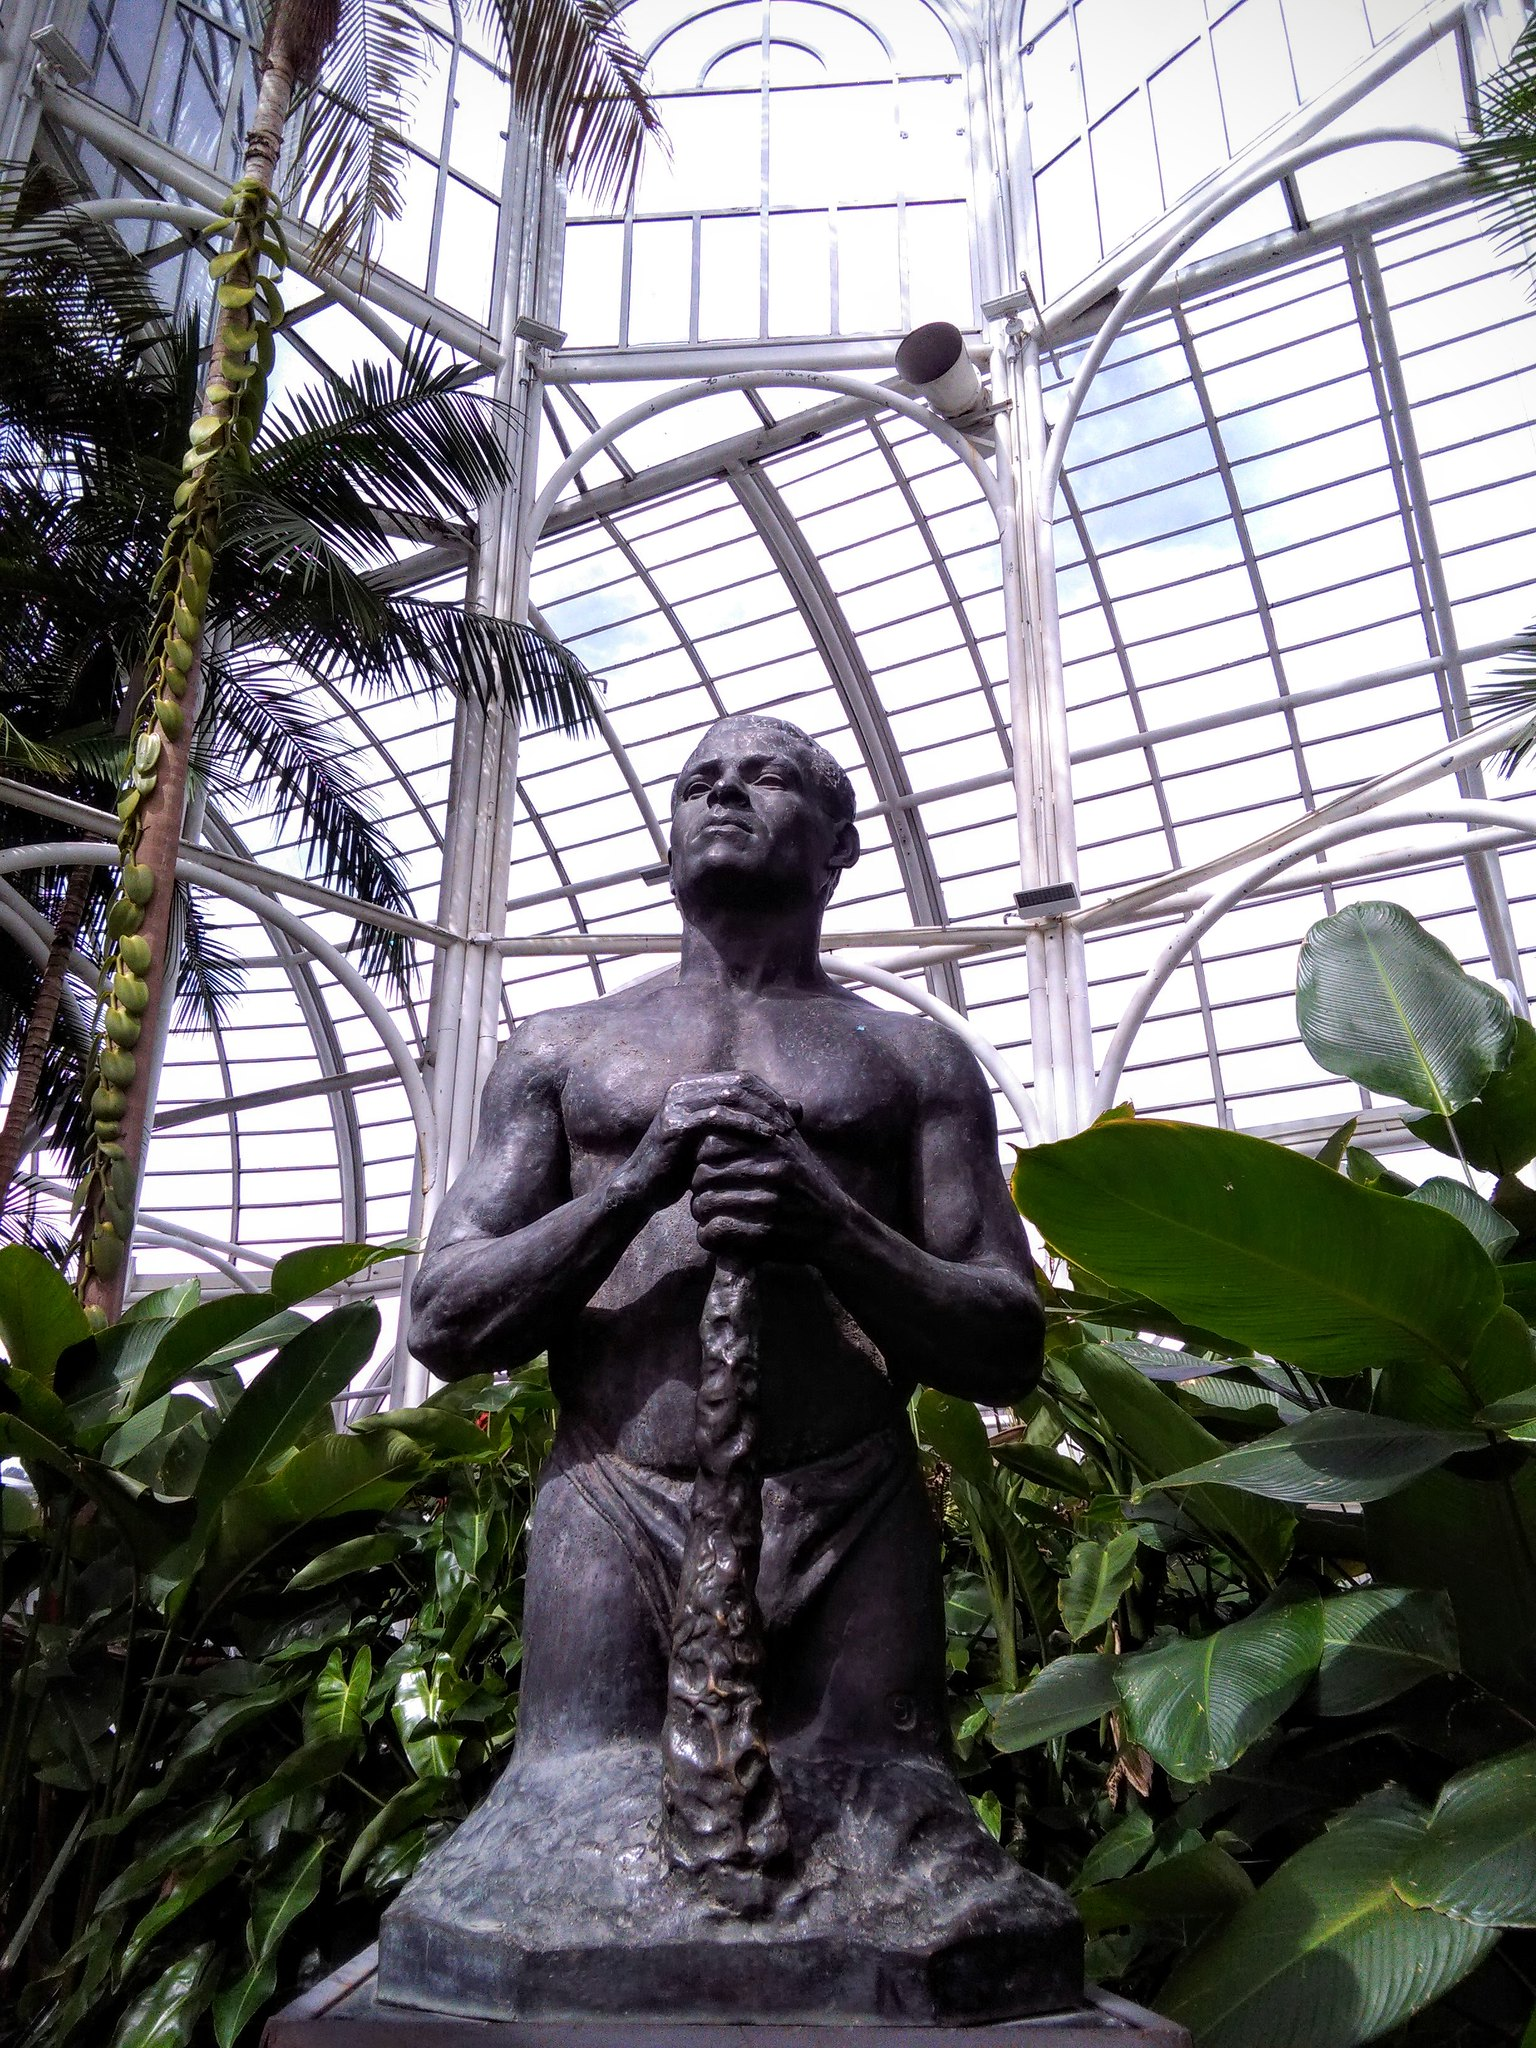 Statue from the botanical gardens